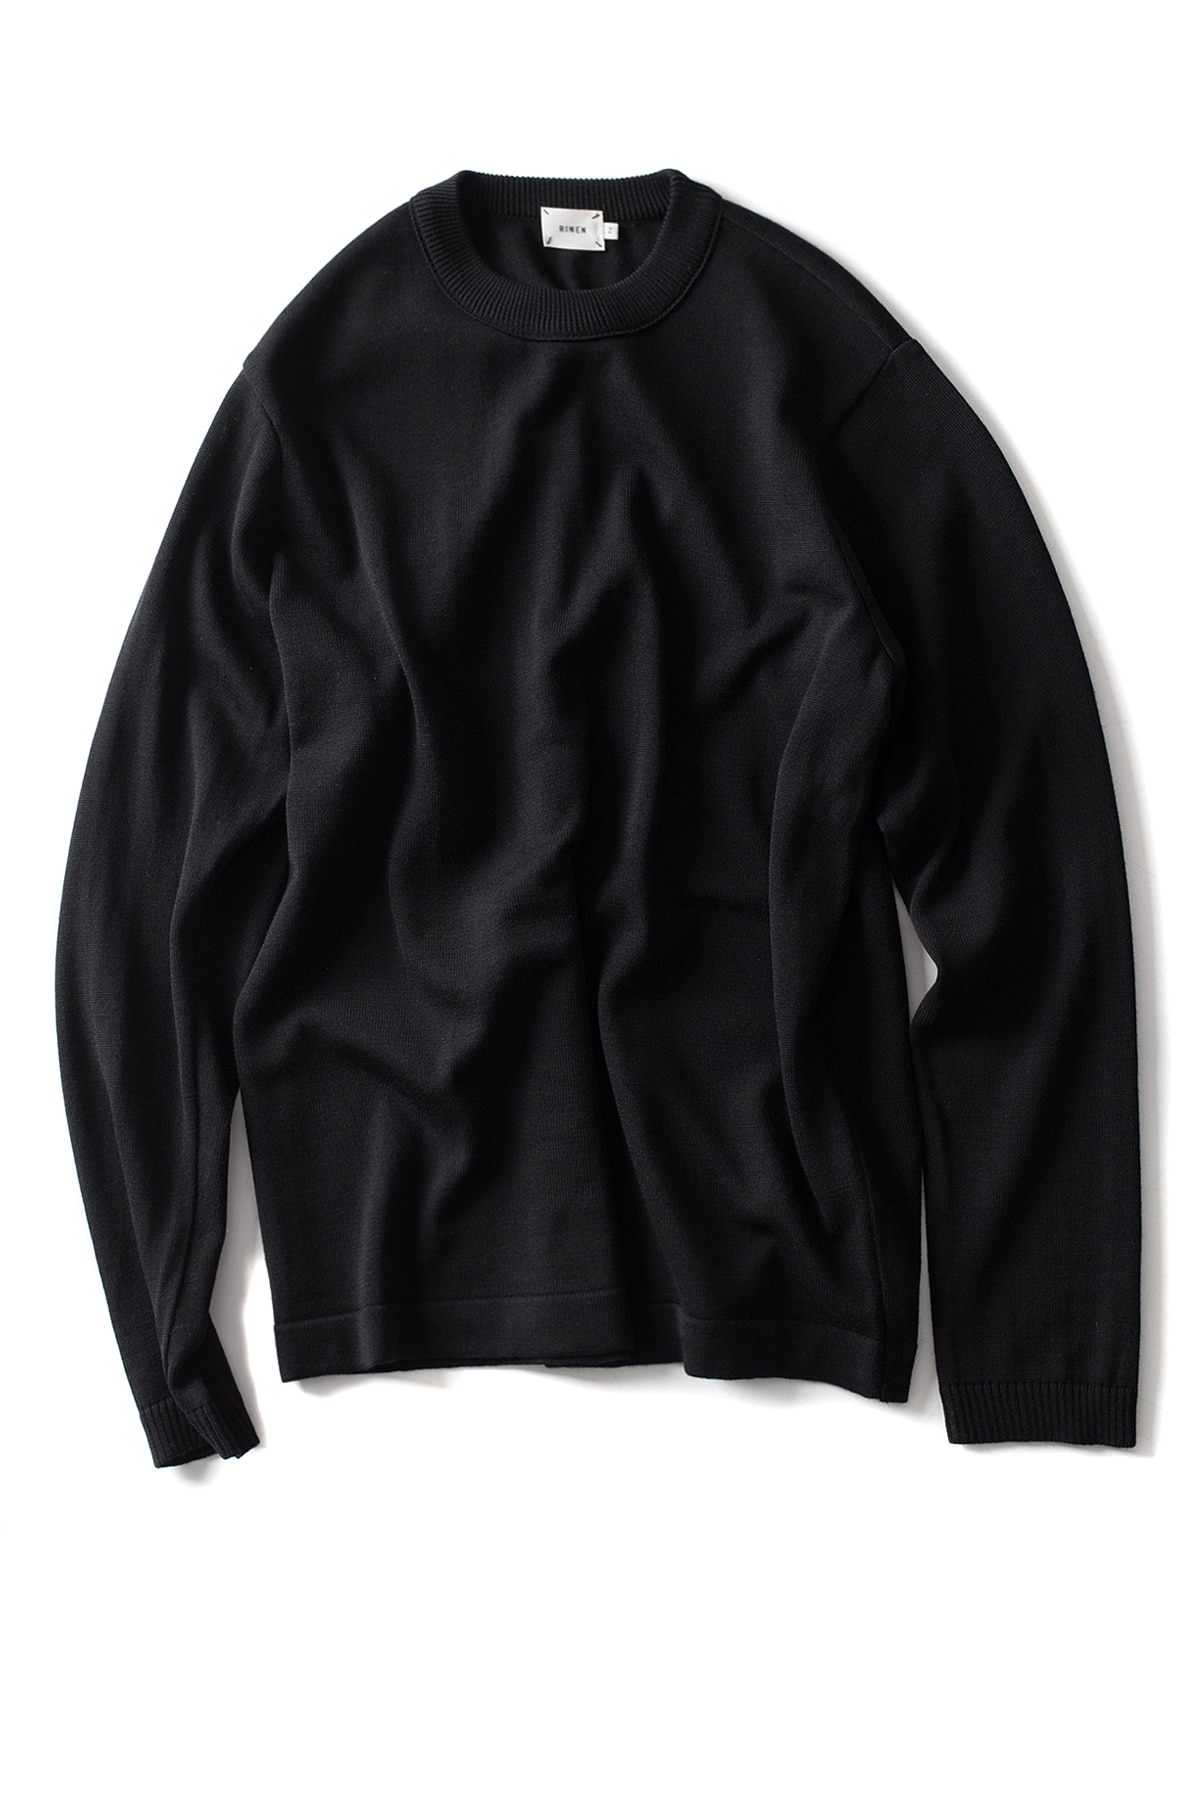 RINEN : Wool Crewneck (Black)